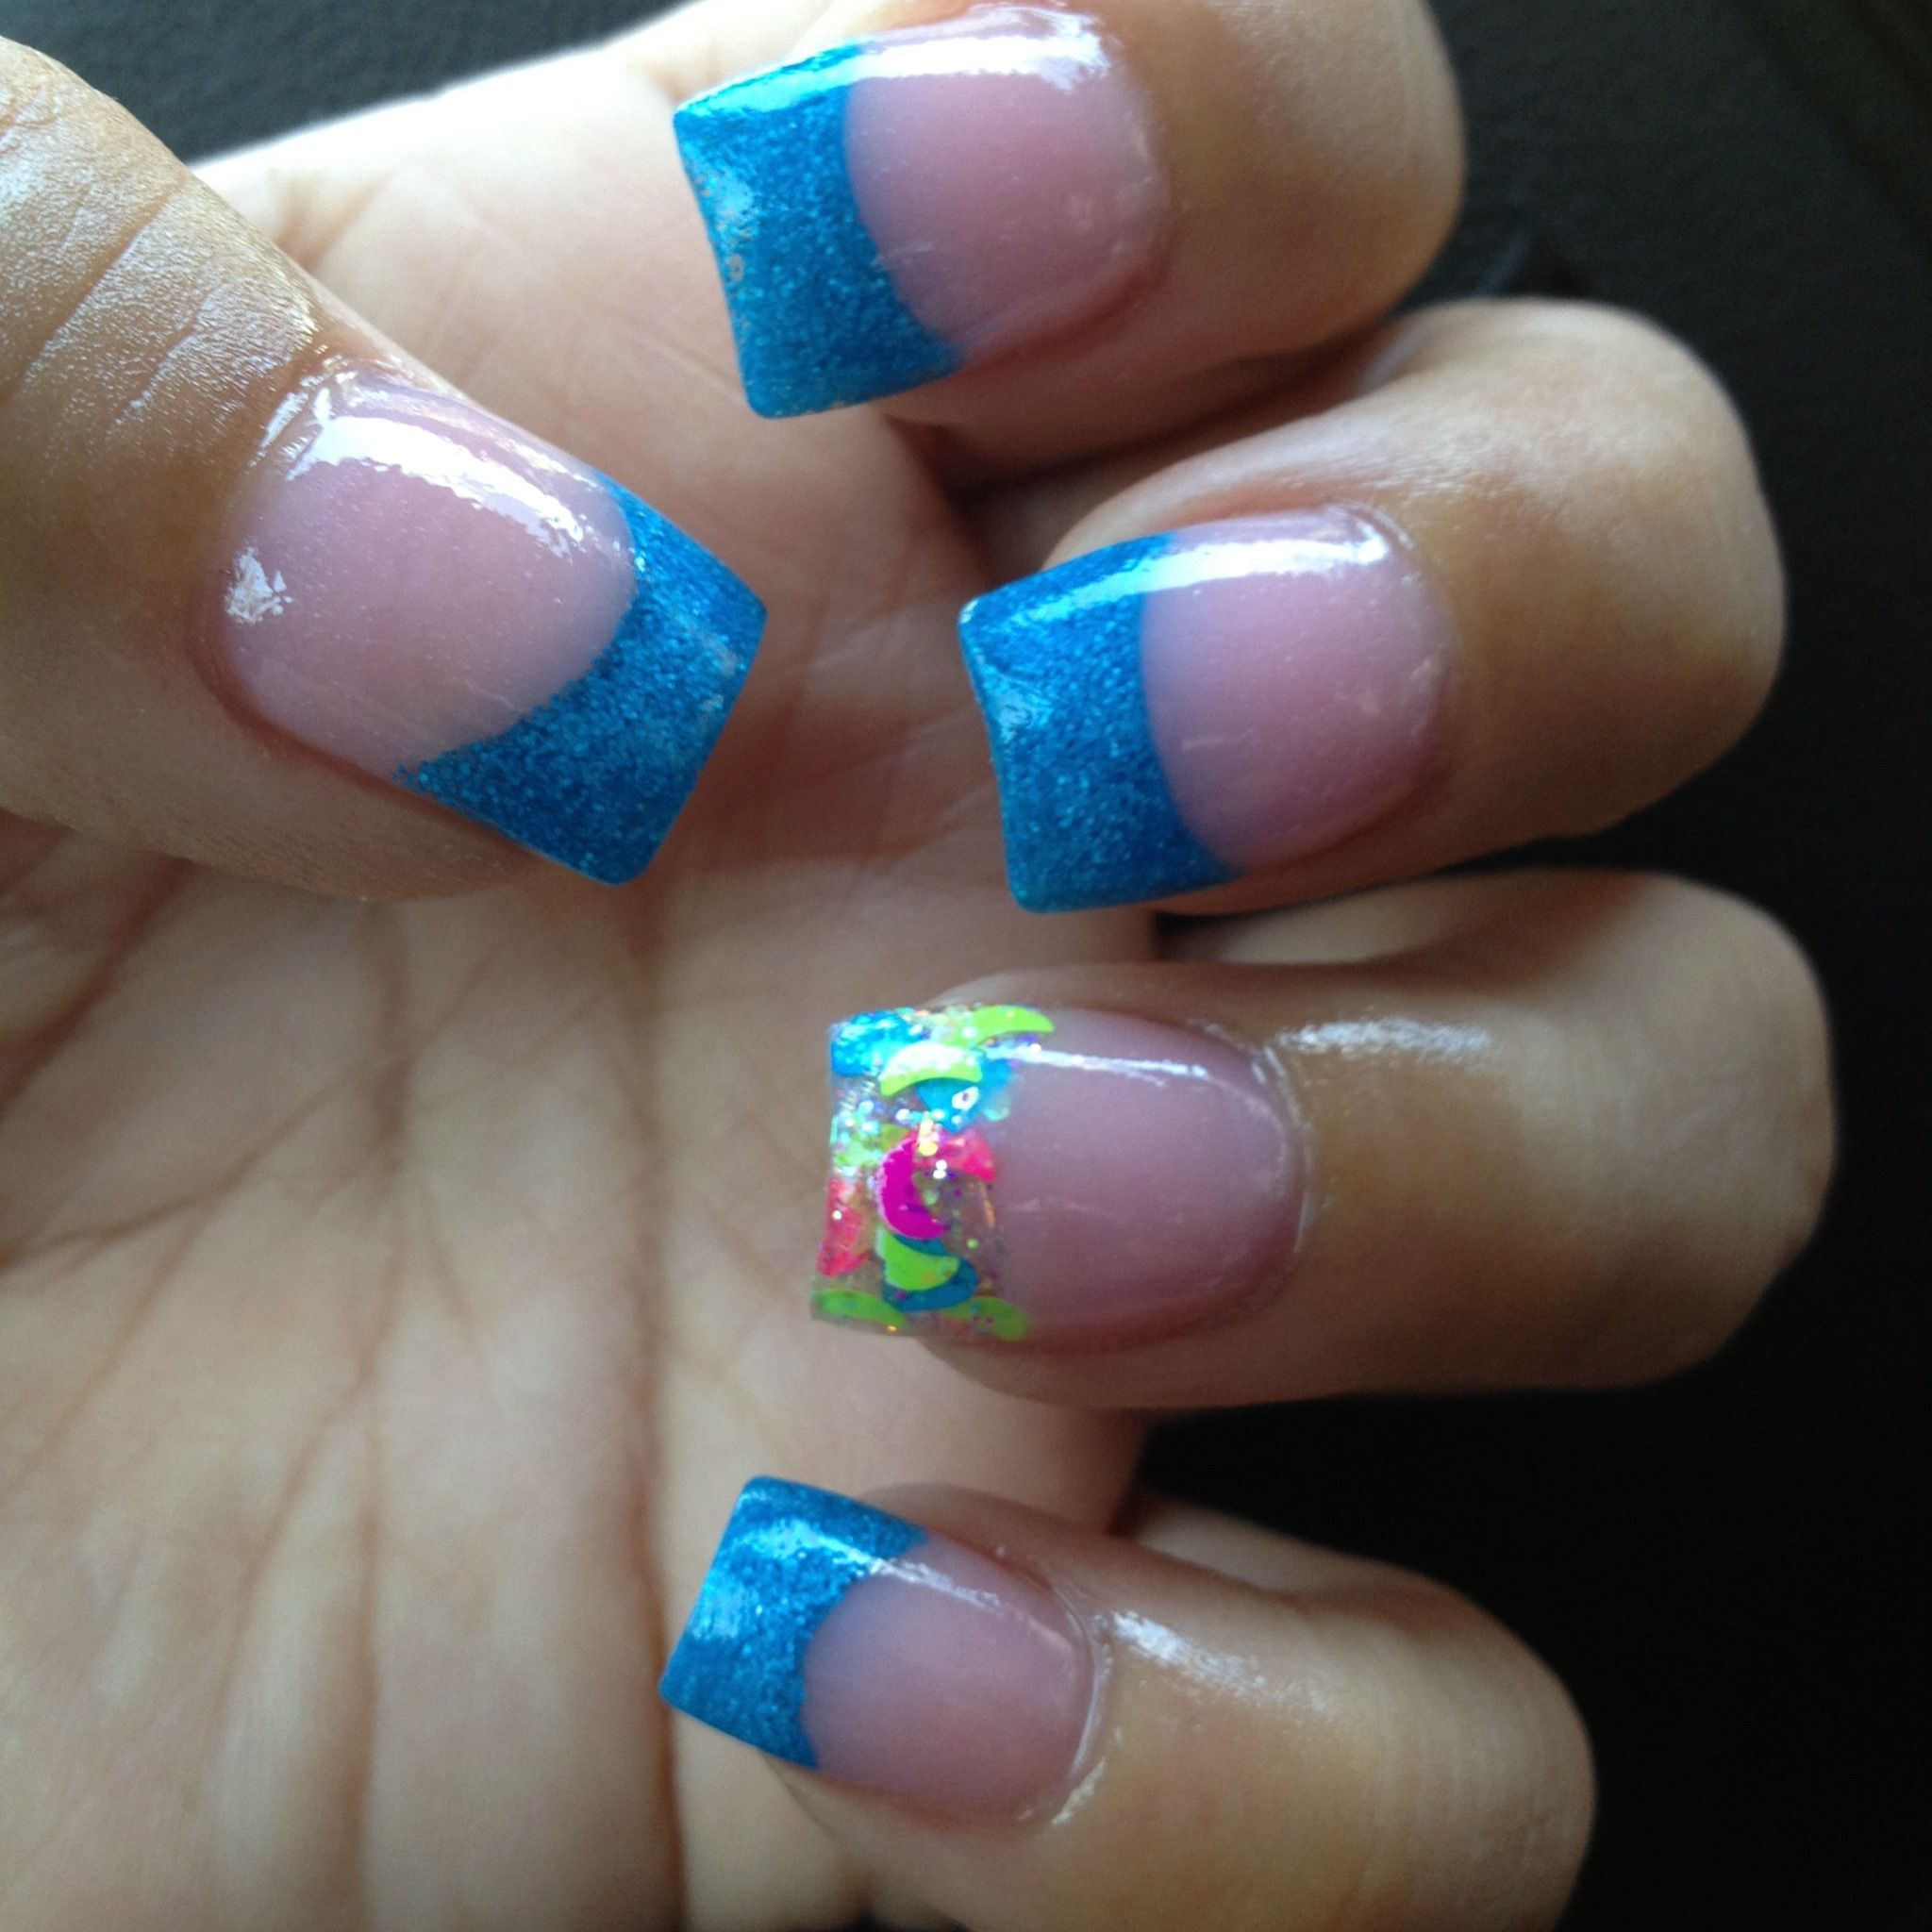 Bright Blue Nails W/confetti On Ring Fingers For July 2012